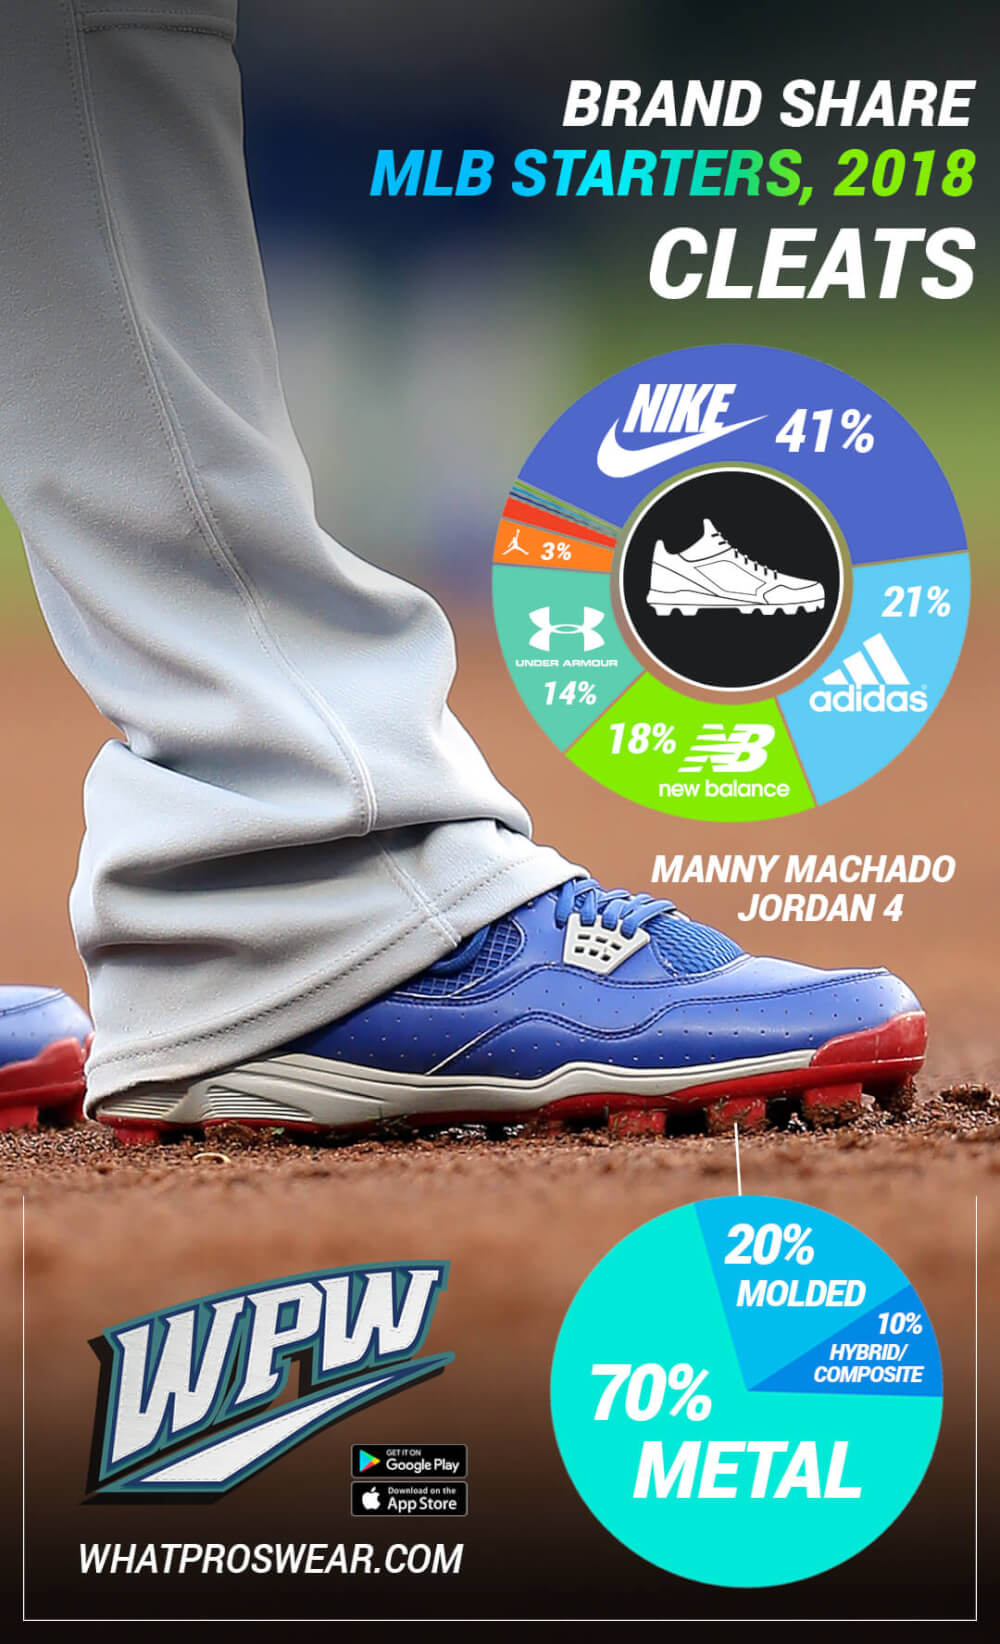 2c5e75bf1 While Under Armour and New Balance dipped in 2018, losing six and three  points of market share, respectively, Adidas continued to surge.